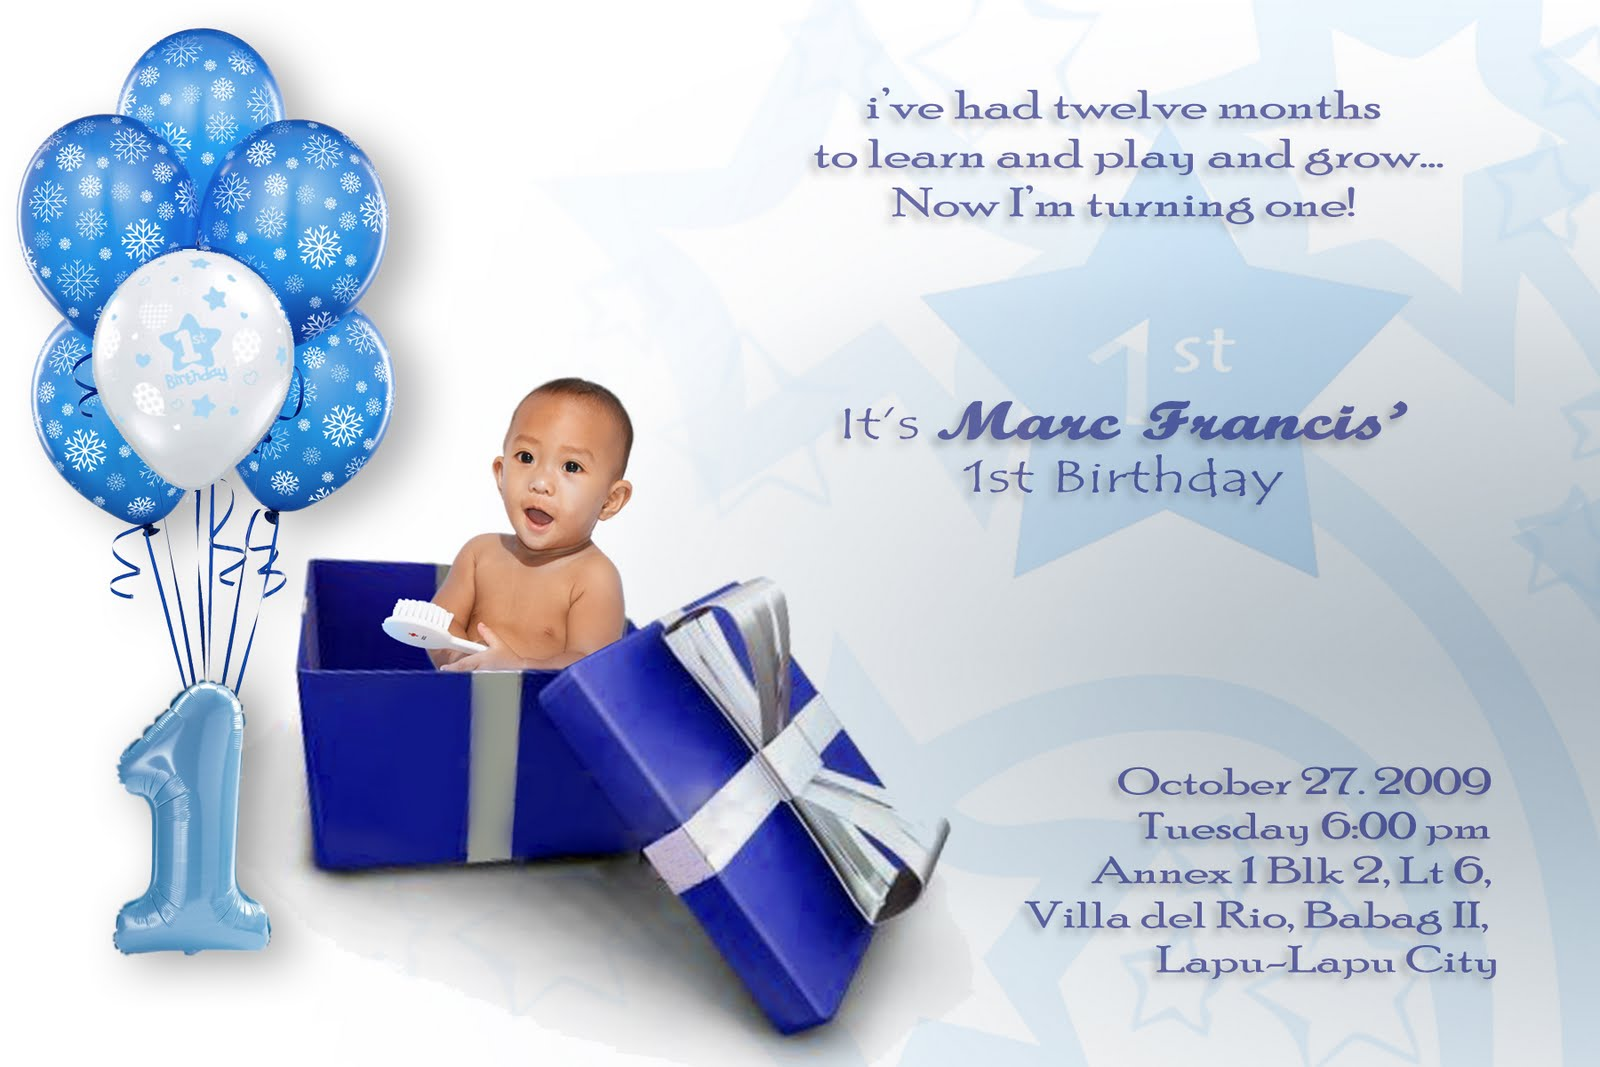 boronganon: Invitation Card on Marc's 1st birthday